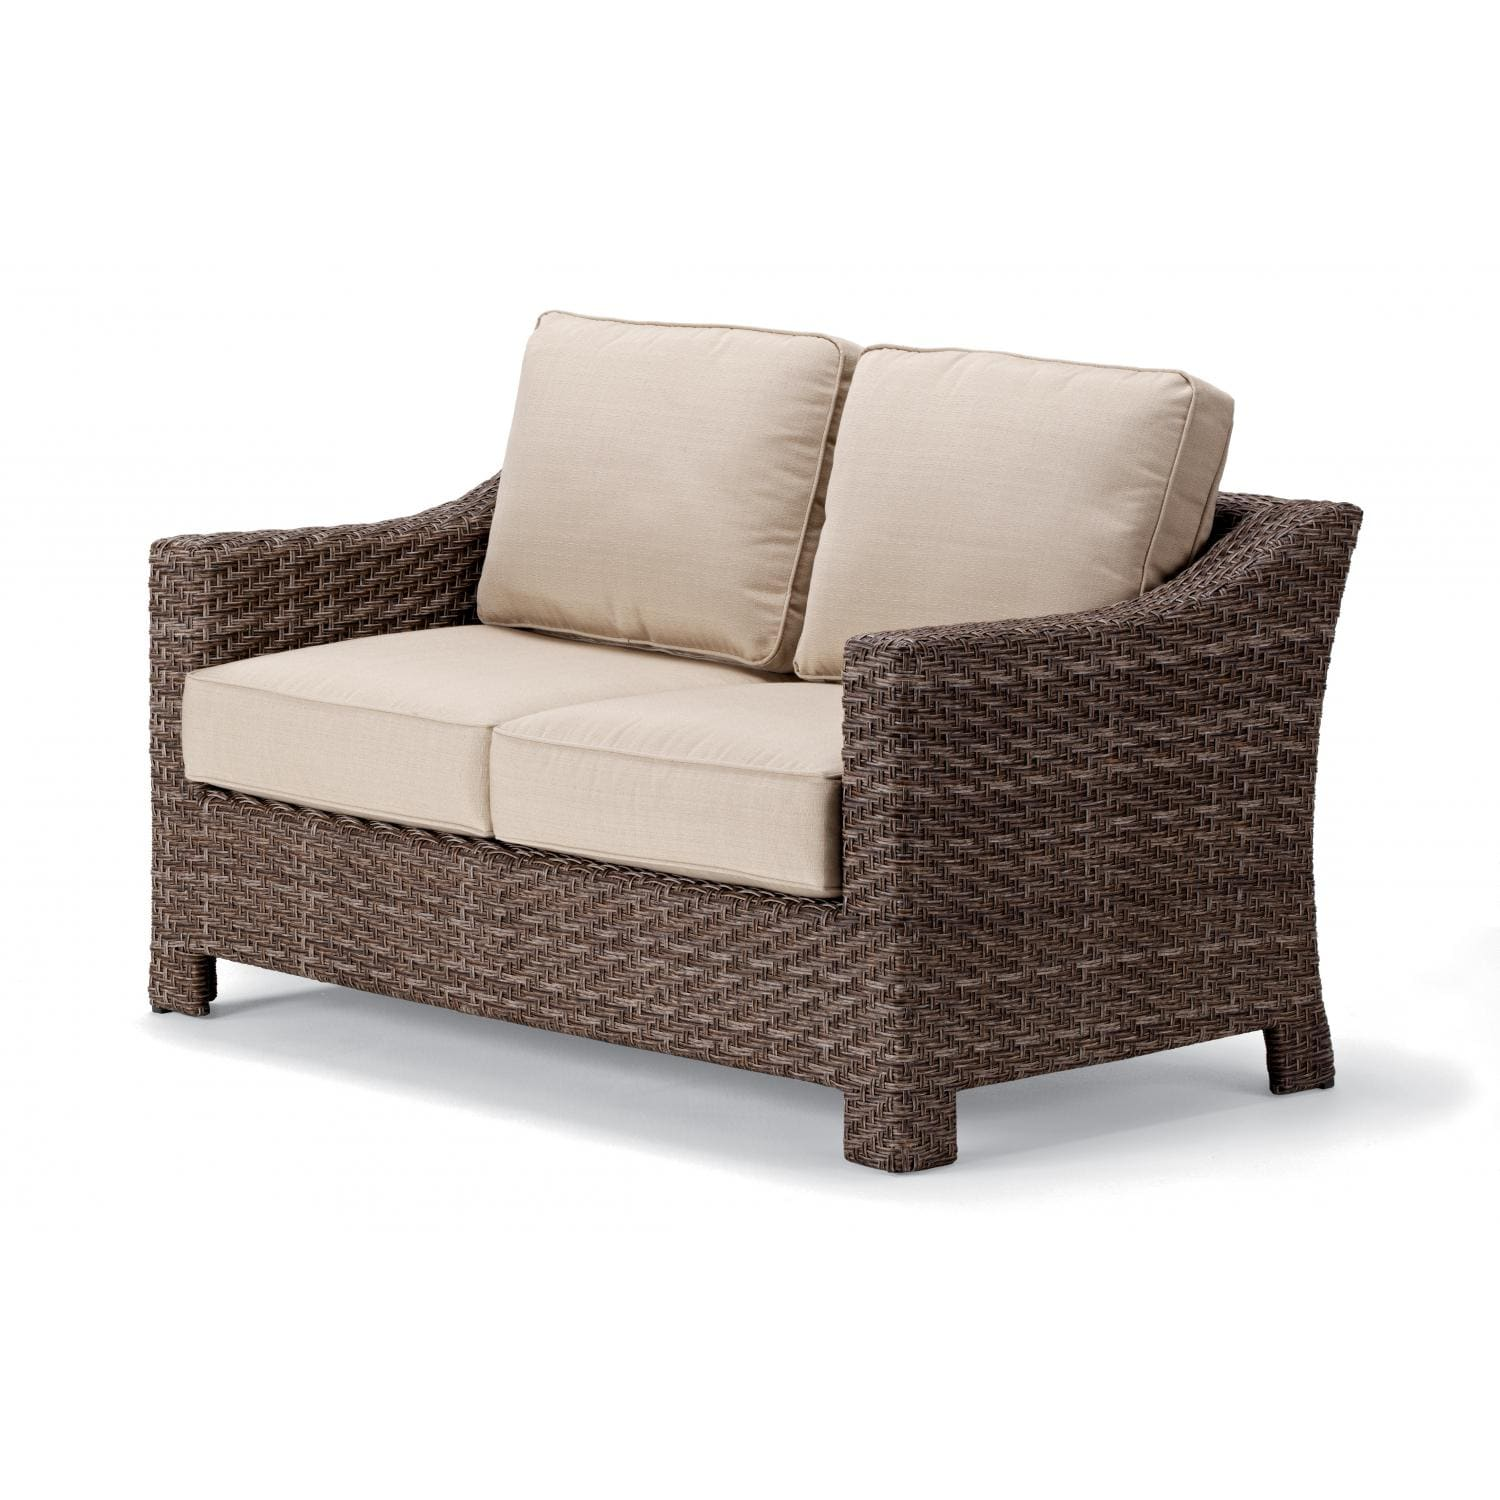 Superieur Lake Shore Wicker Patio Loveseat By Telescope Casual   Driftwood/Linen  Champagne : Ultimate Patio